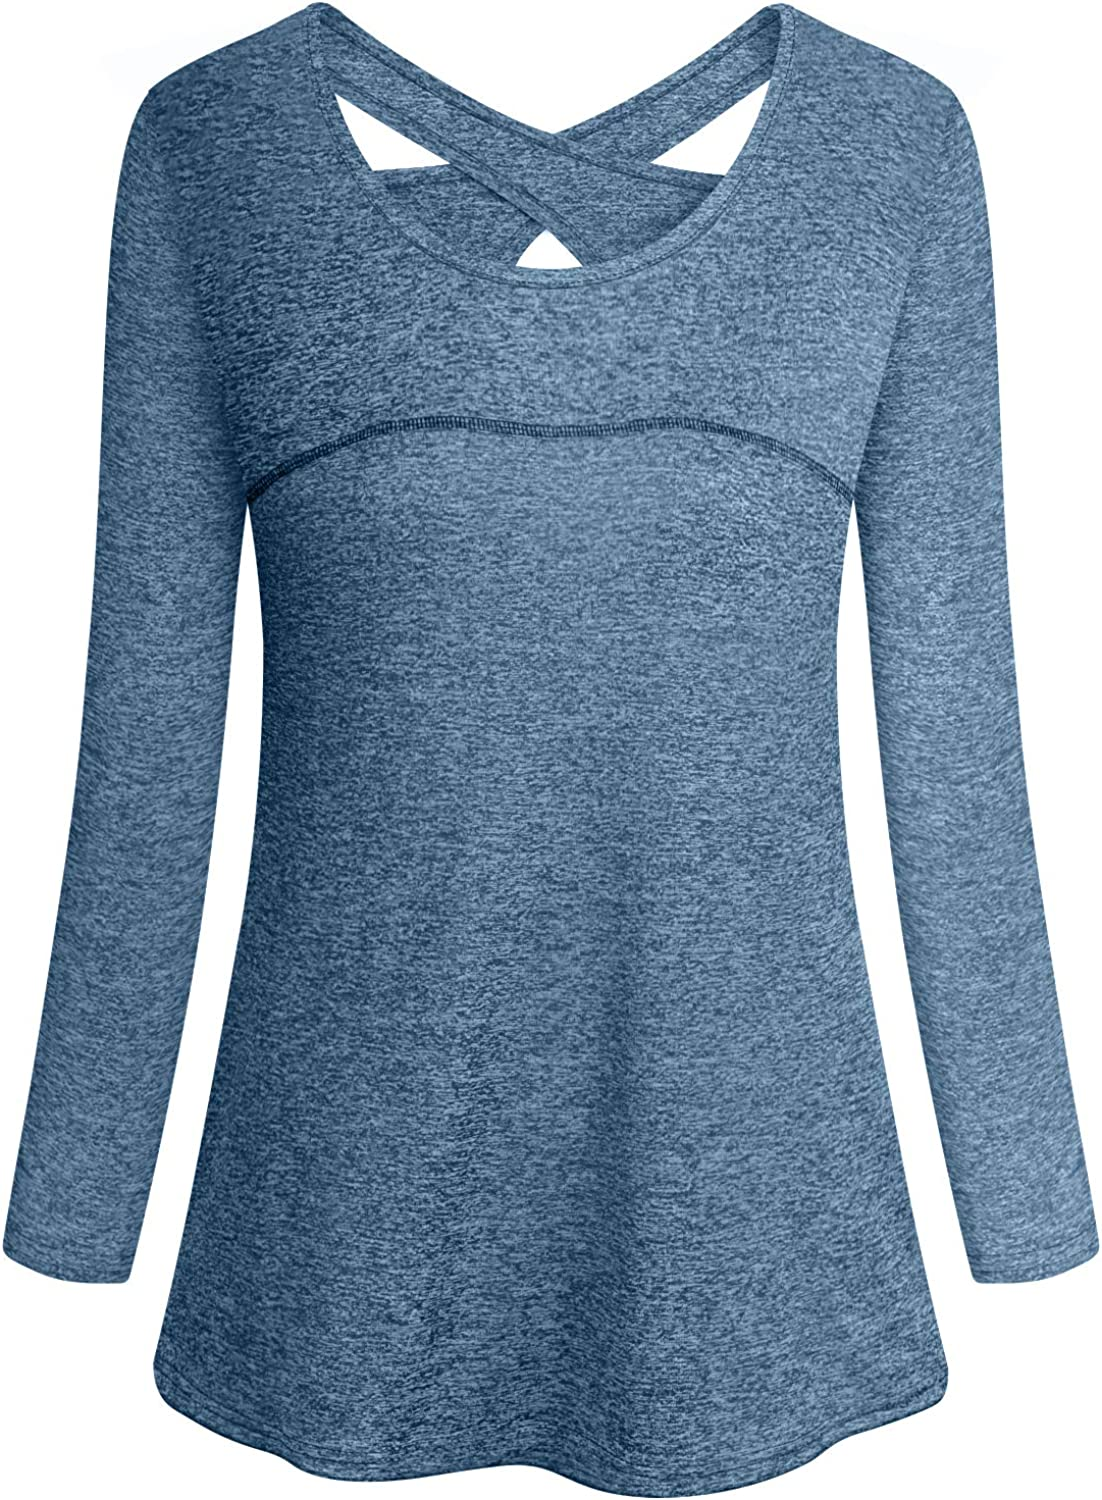 Cucuchy Womens Yoga Tops Casual Flowy Long Sleeve Criss Cross Back Workout Shirts: Clothing